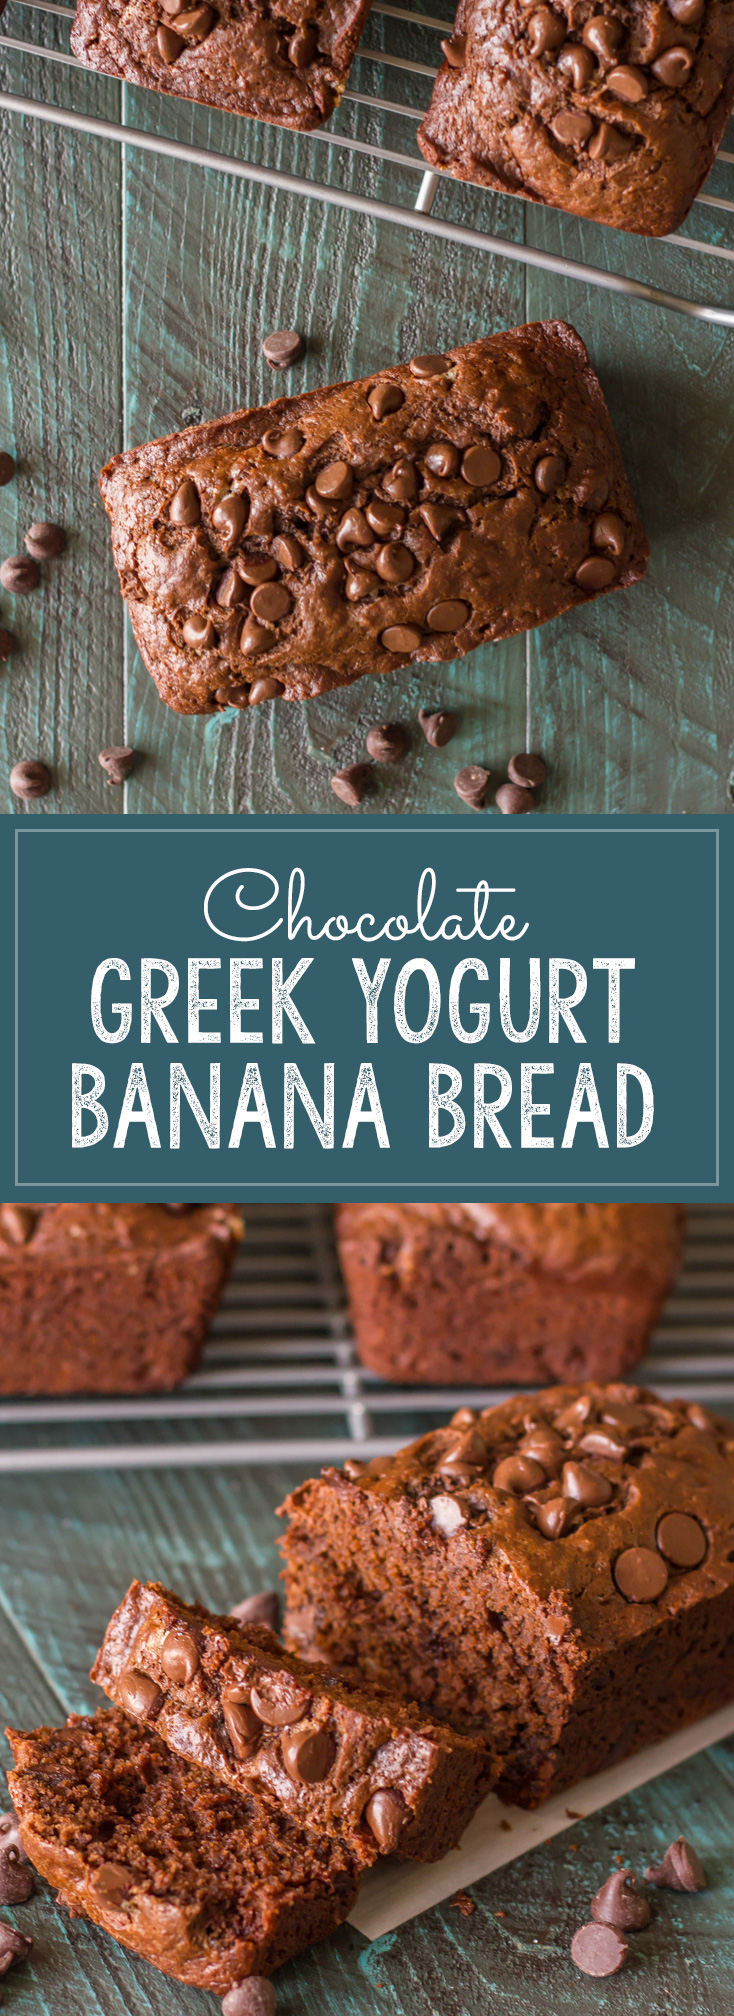 Chocolate Chocolate Chip Greek Yogurt Banana Bread - So amazing what a little cocoa powder and chocolate chips will do to a simple loaf of banana bread!